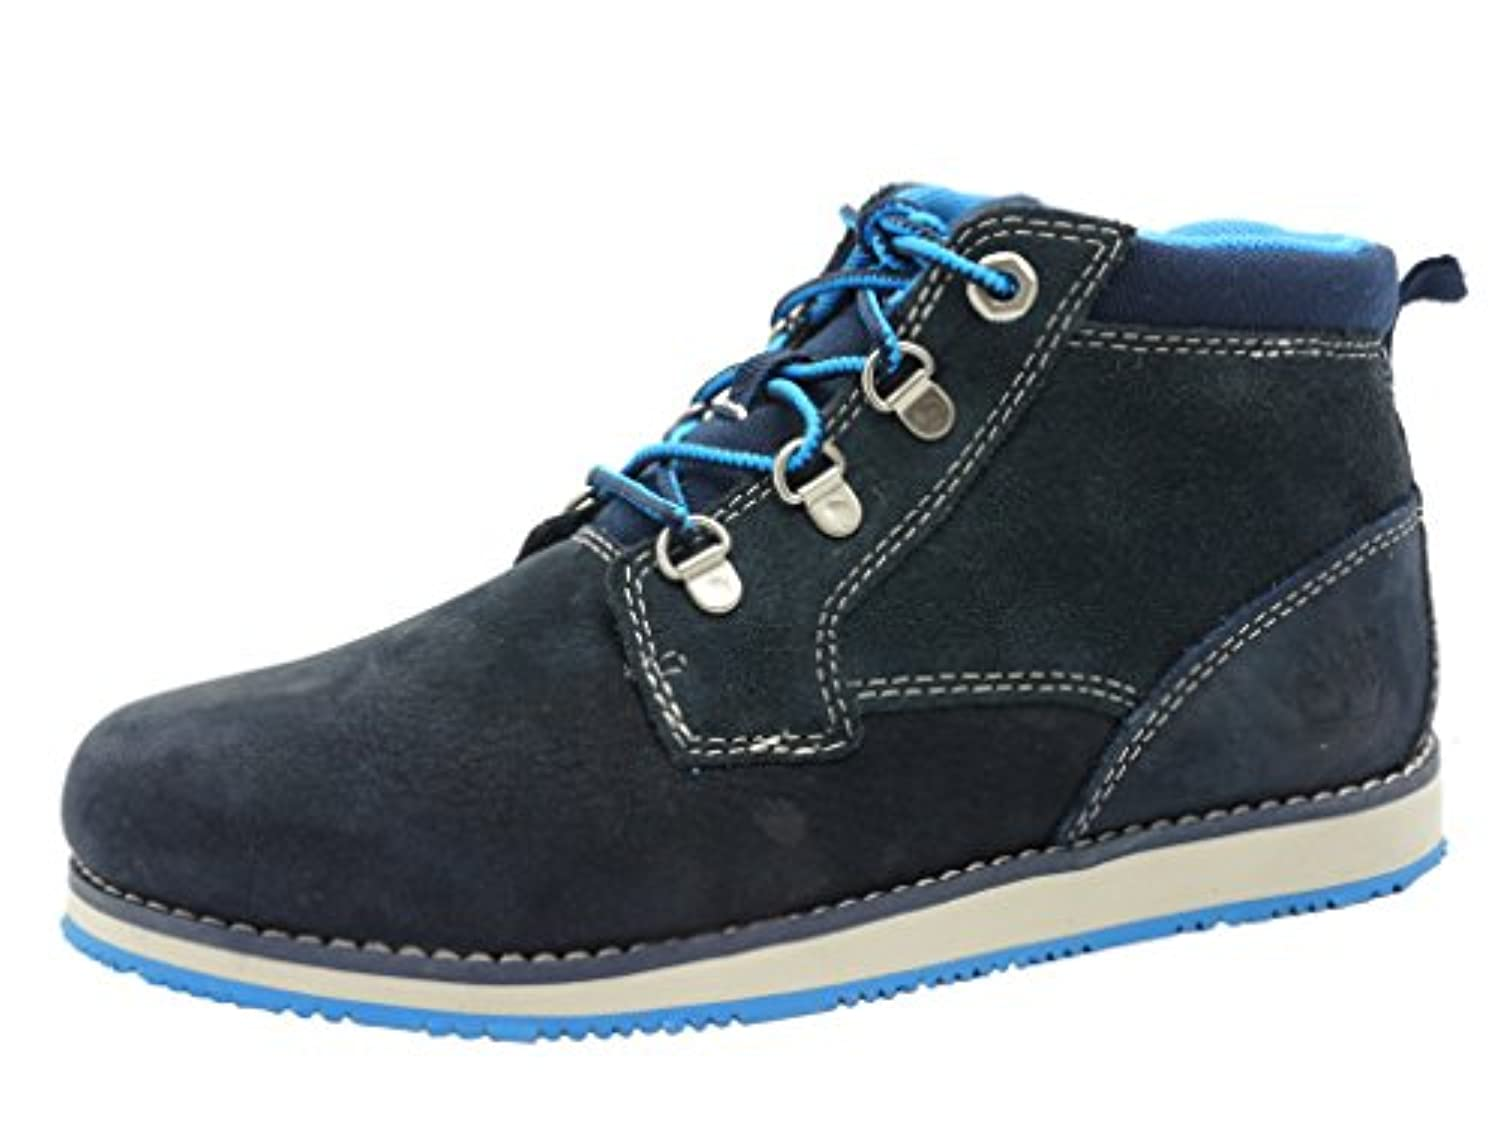 Boys Timberland Children Boys Rollinsford Boots in Blue - UK 1.5